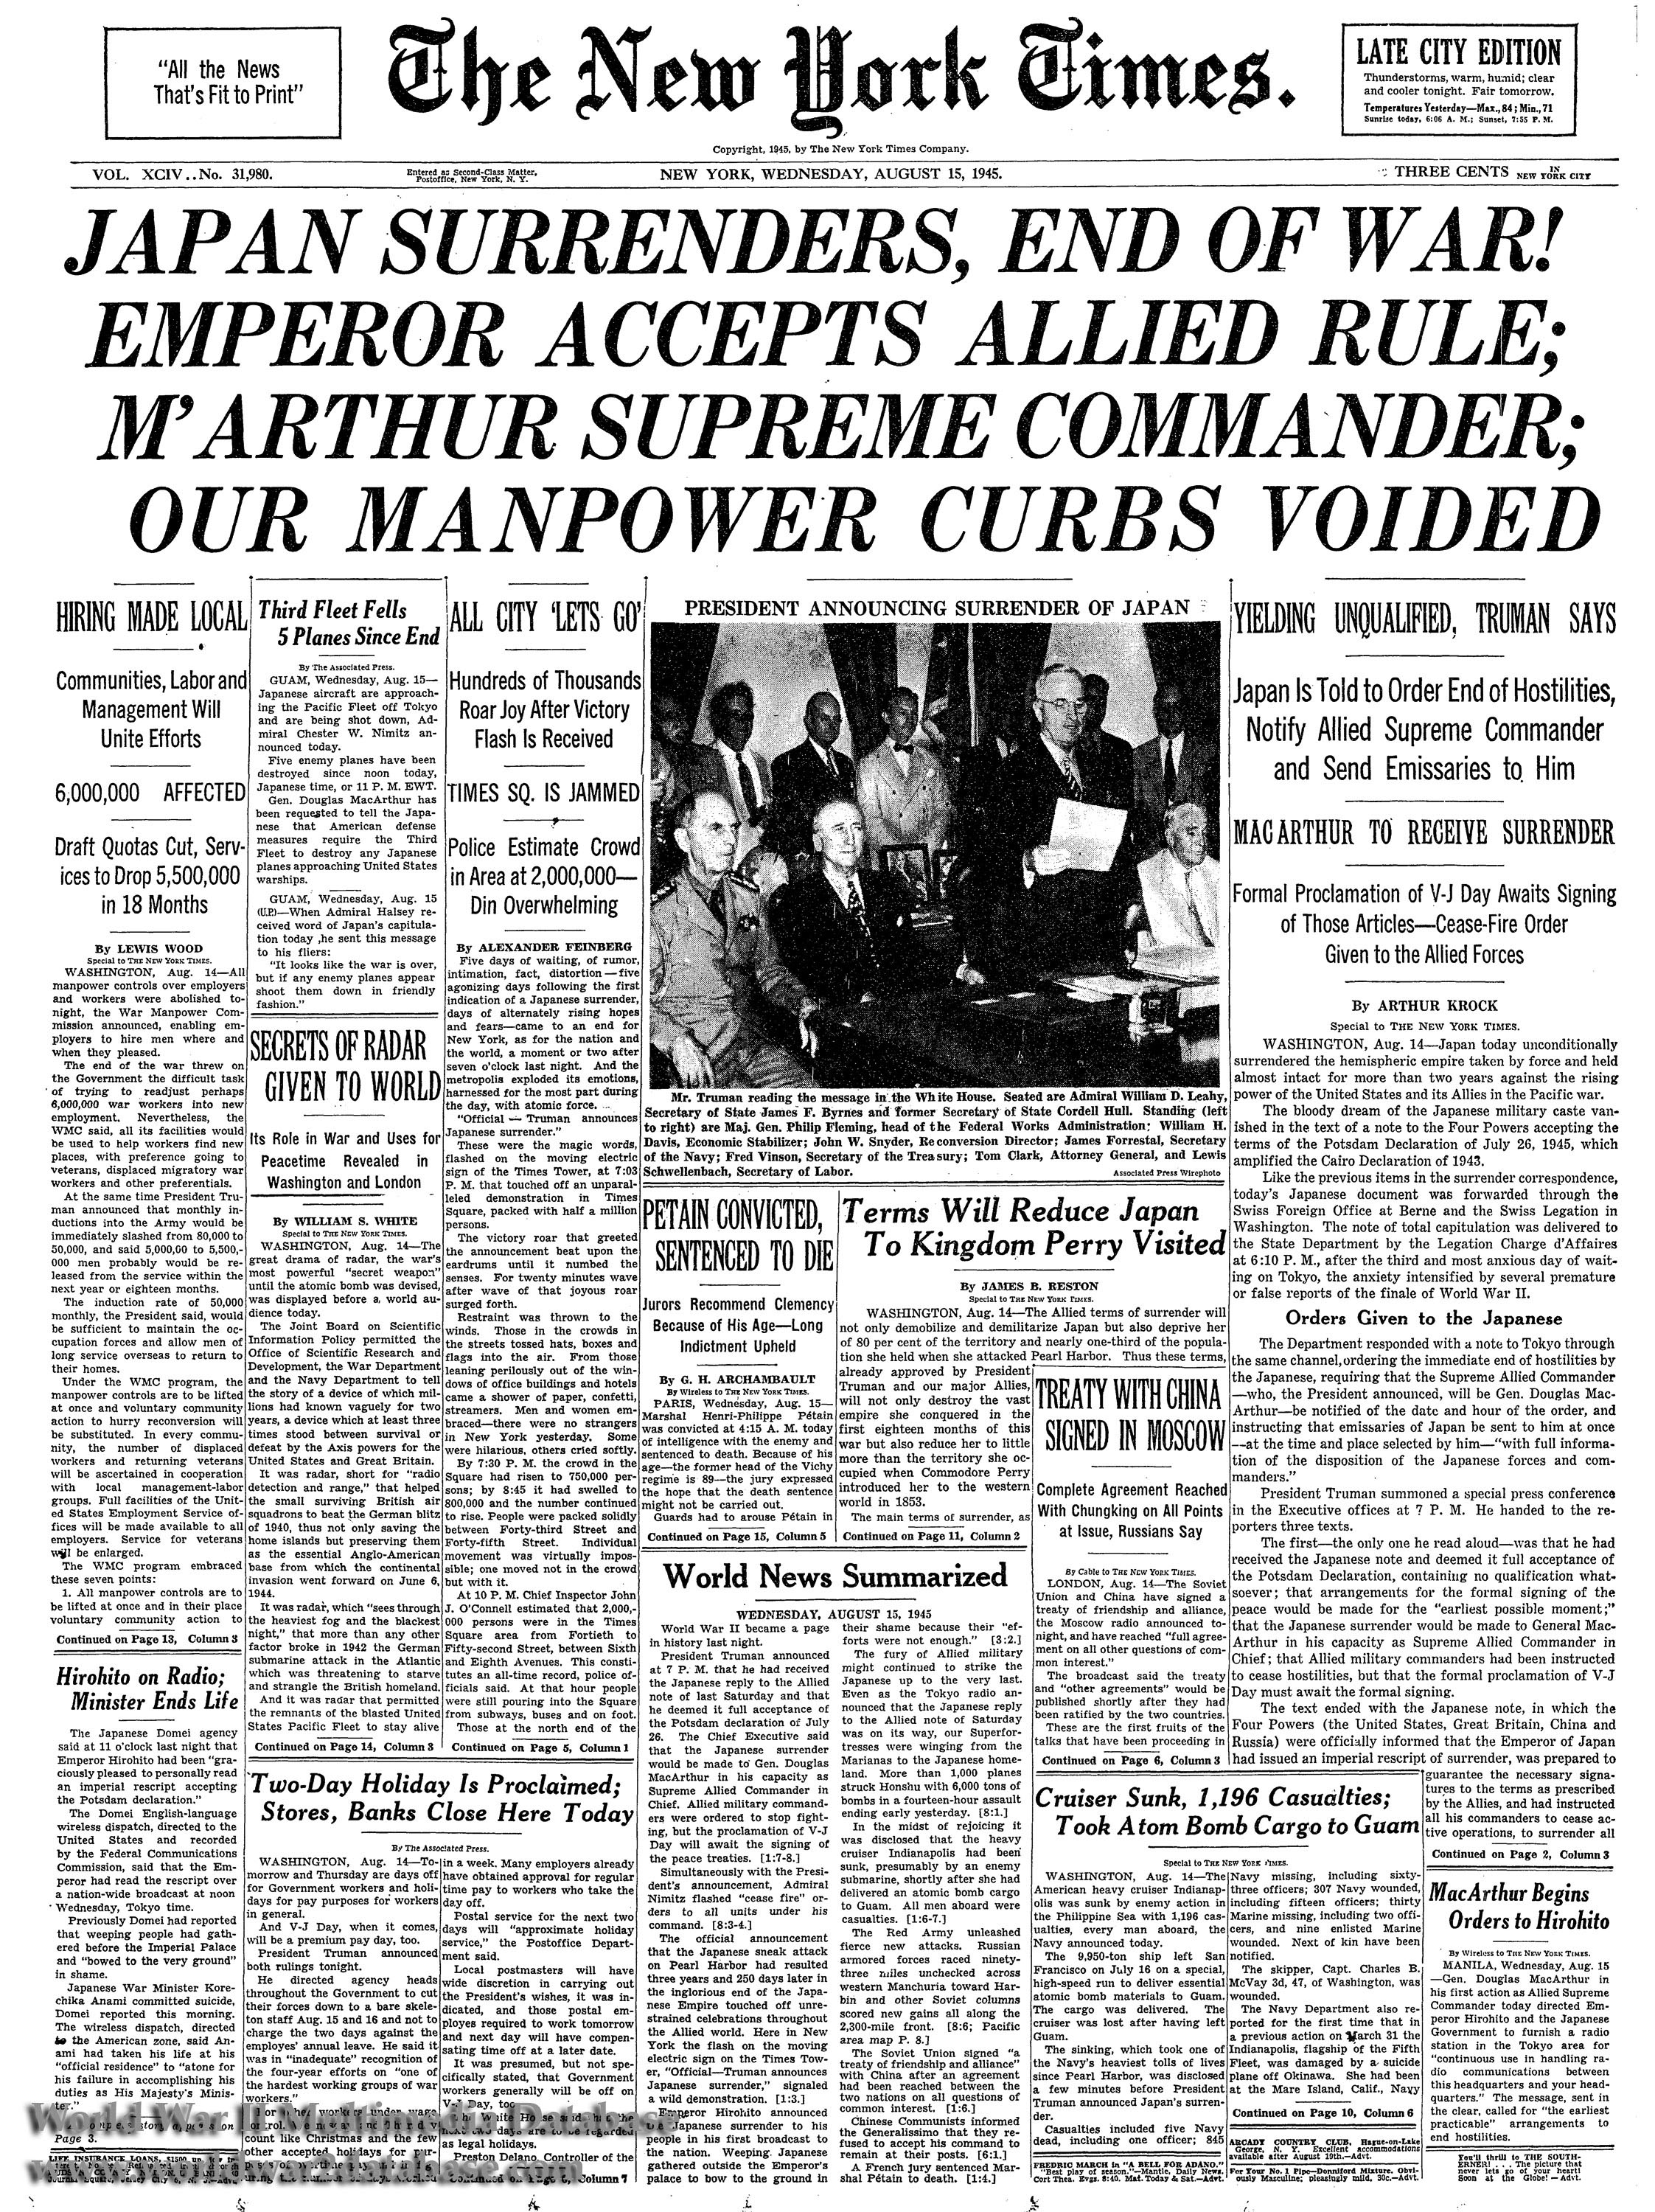 Front Pagenew York Times Design Of: New York Times Front Page, August 15, 1945